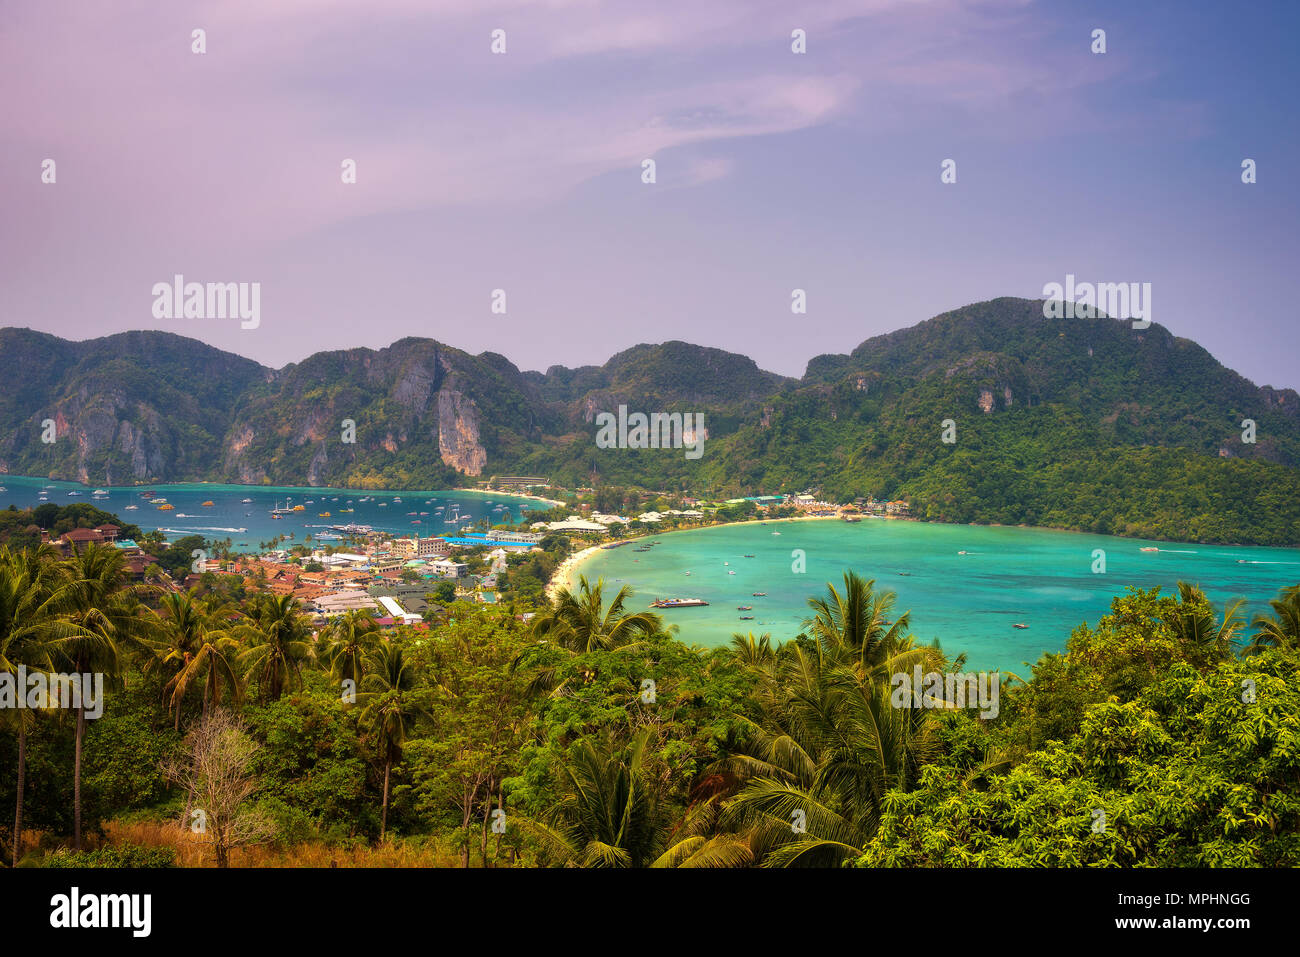 Tonsai Village and the mountains of Koh Phi Phi island in Thailand - Stock Image